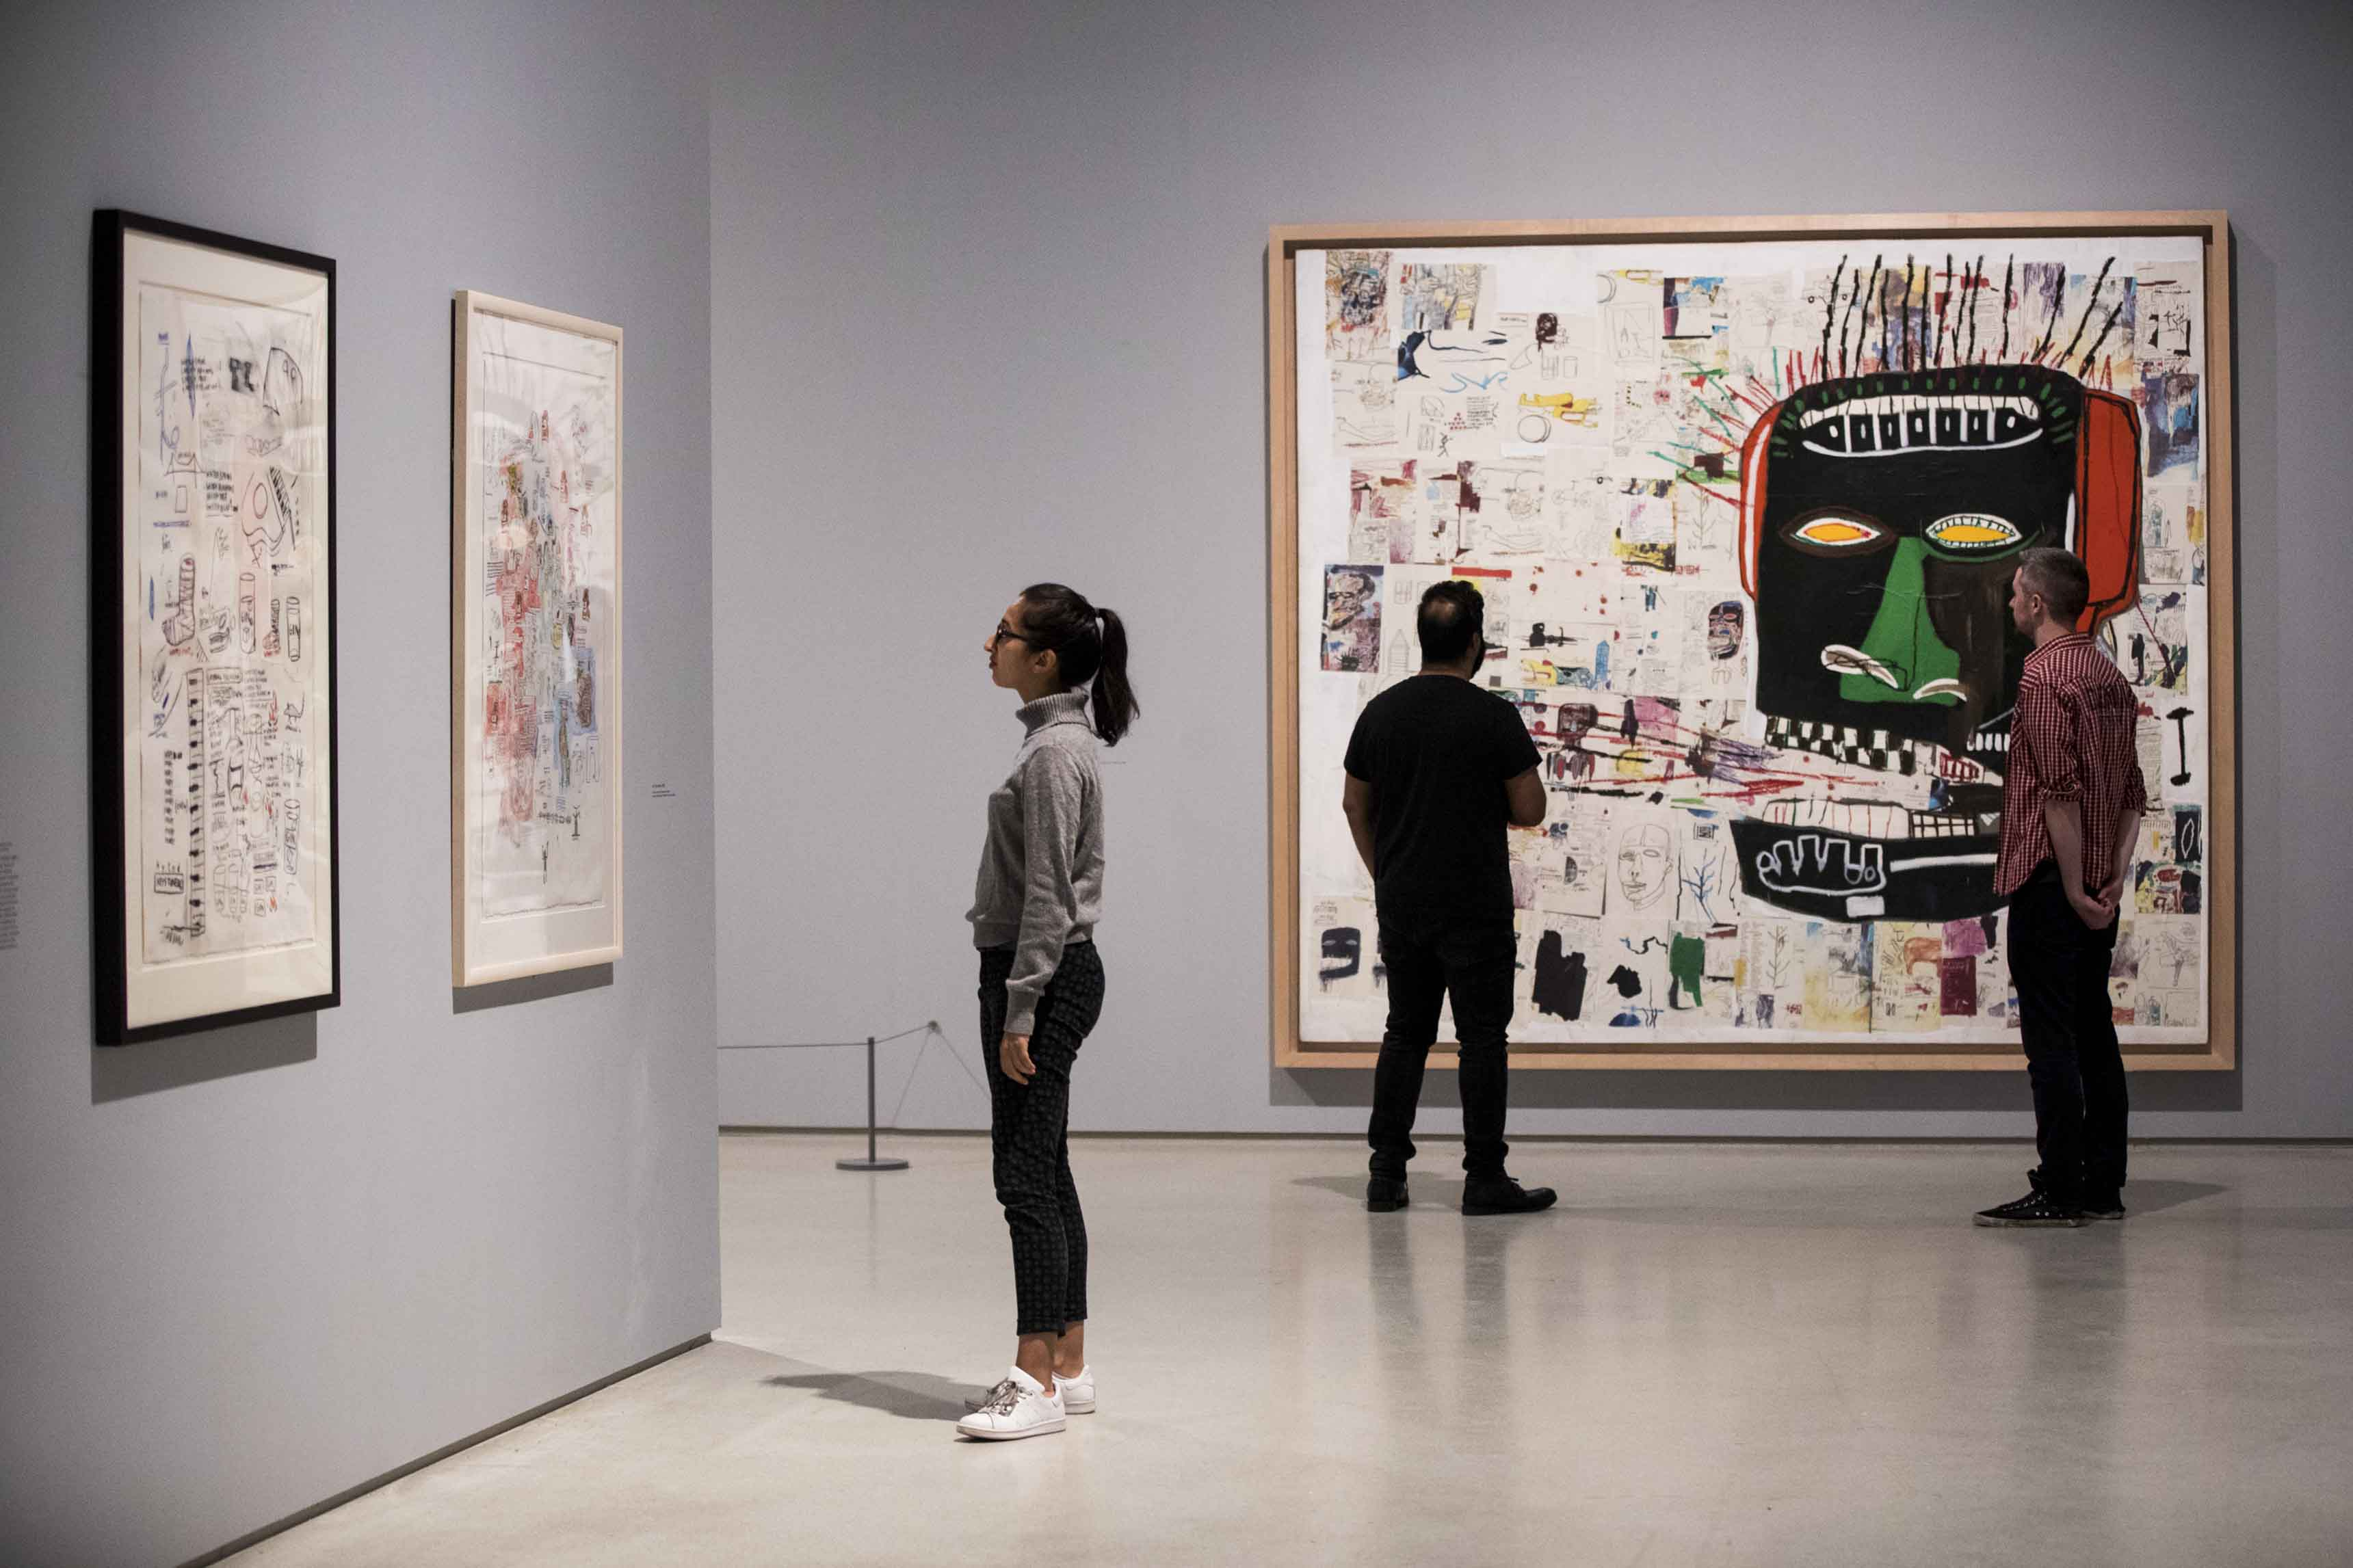 Basquiat: Boom For Real Installation view Barbican Art Gallery 21 September 2017 – 28 January 2018 © Tristan Fewings / Getty Images Artworks: Jean-Michel Basquiat Glenn, 1984, Private collection. © The Estate of Jean-Michel Basquiat. Licensed by Artestar, New York.